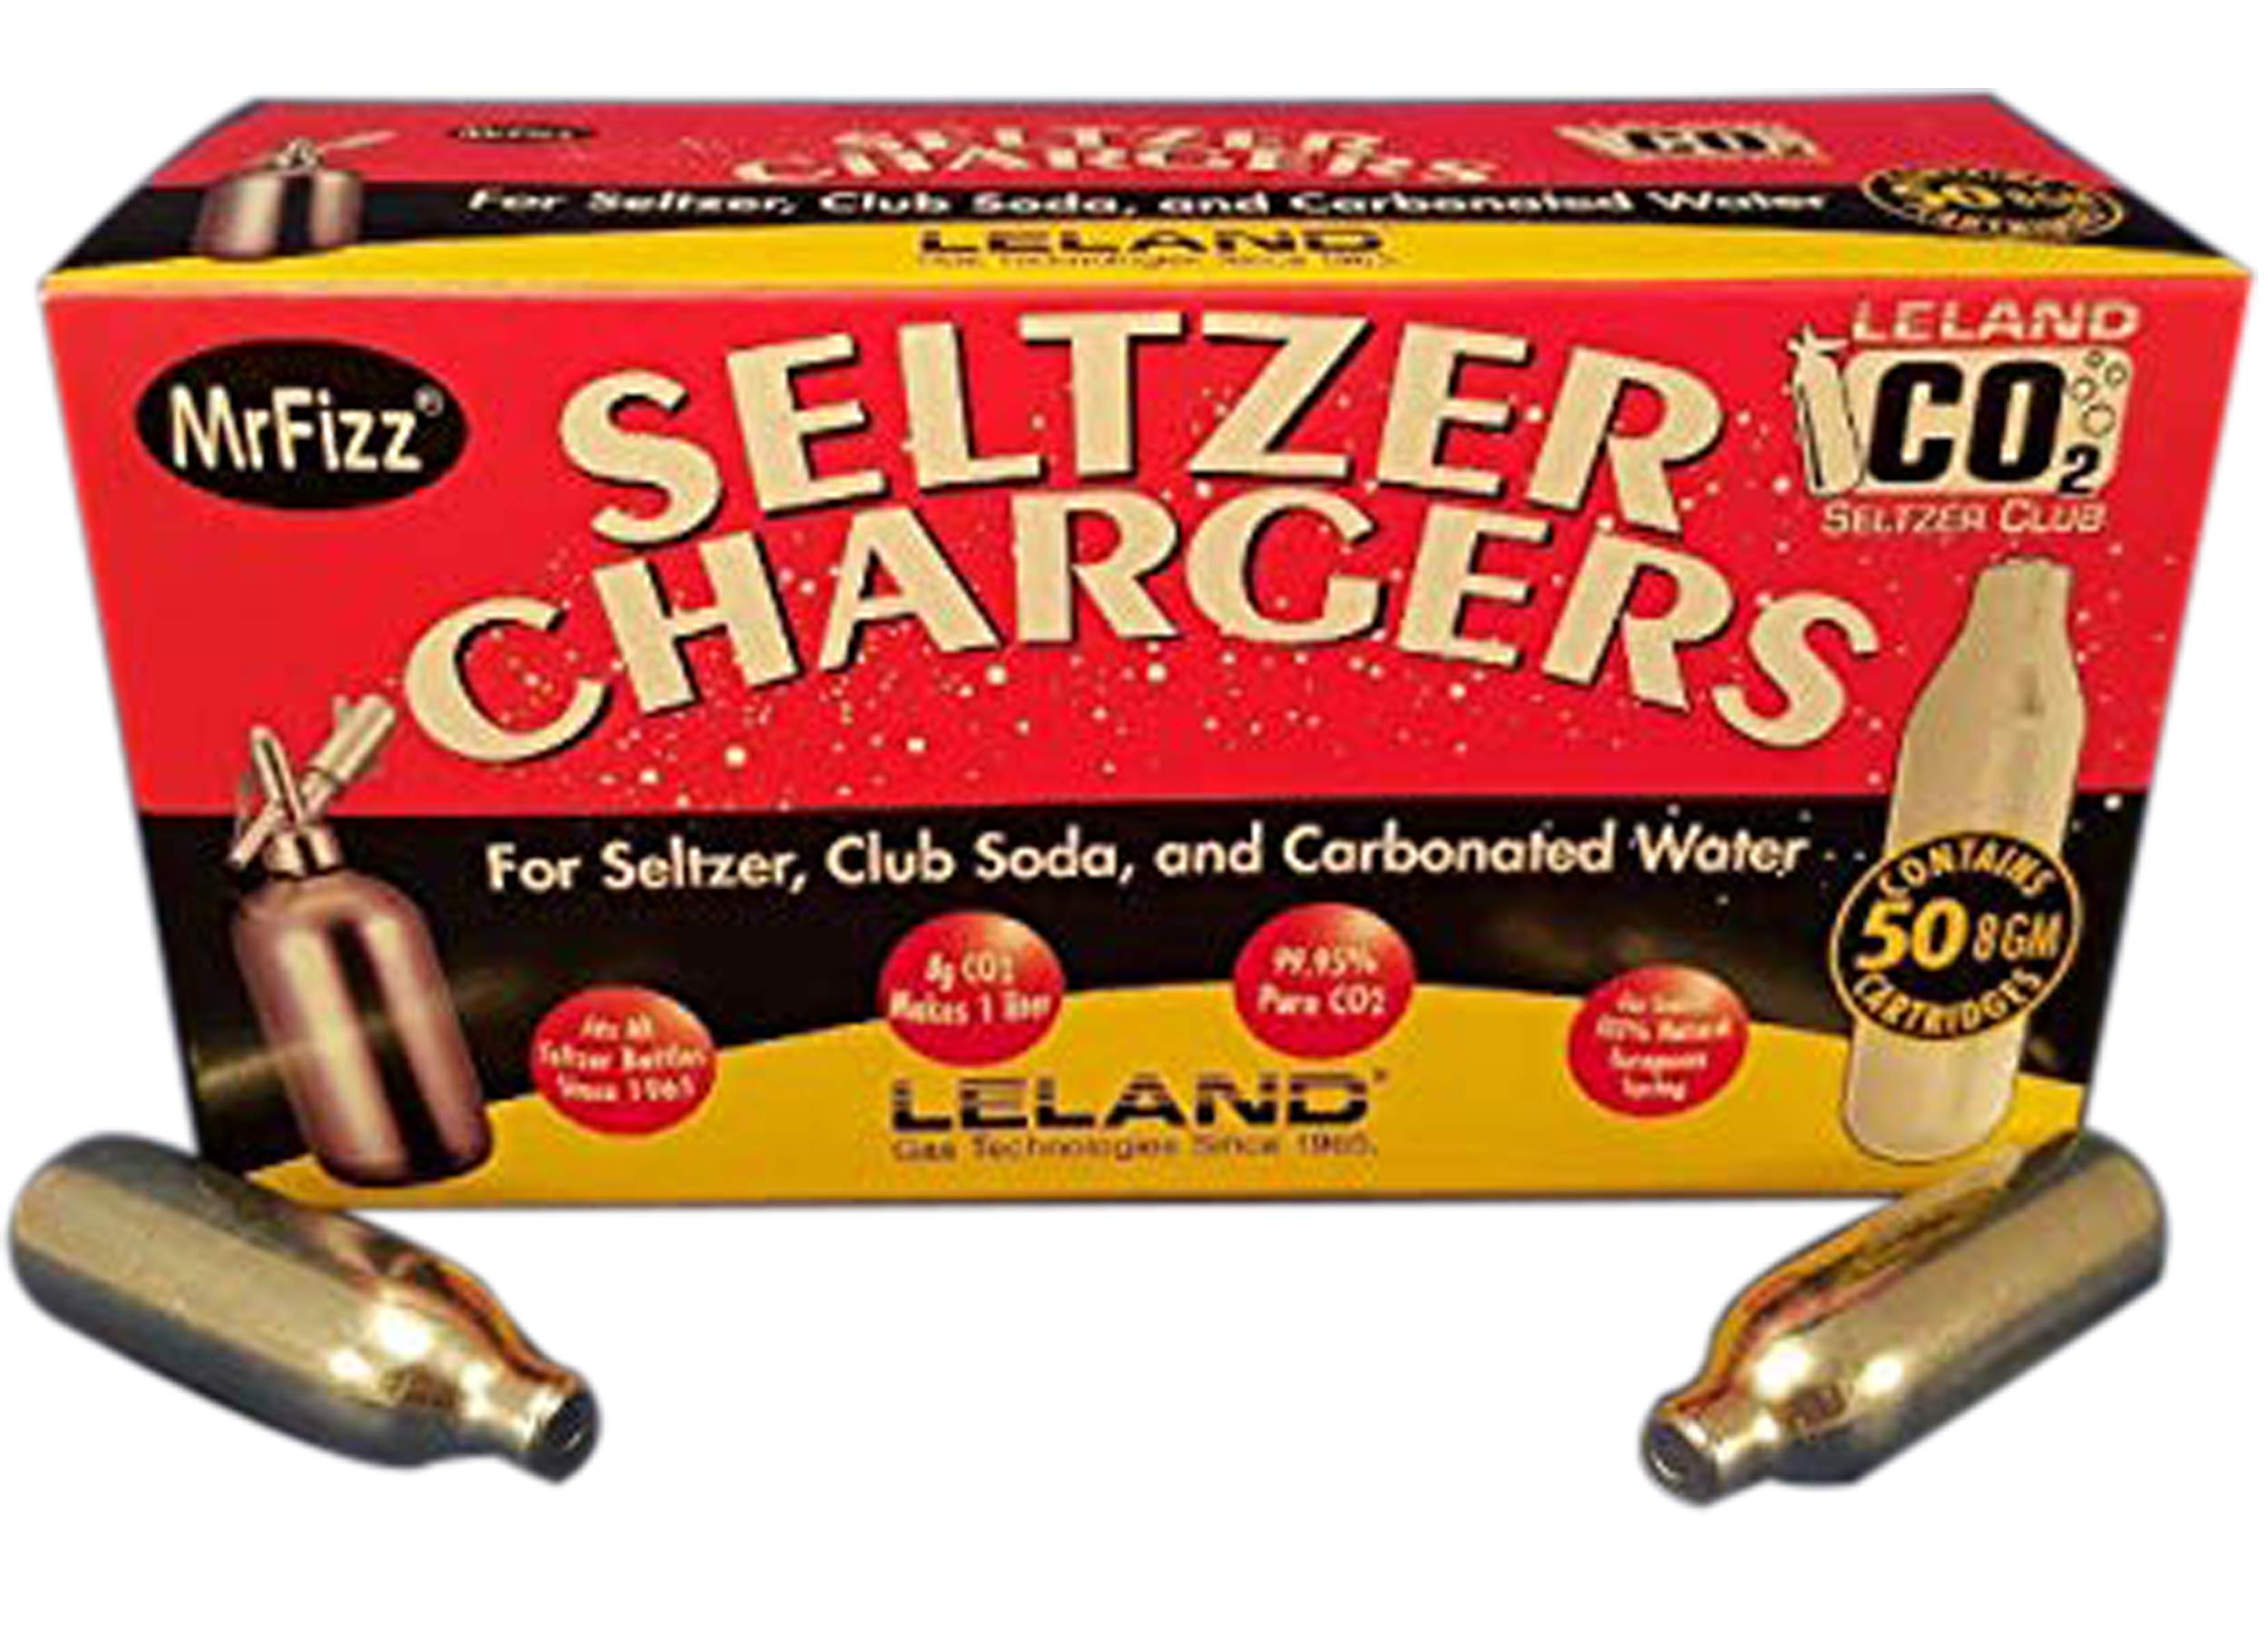 MrFizz LS-50 Sod, Leland Mr Fizz Seltzer 8g CO2 Charger 50PK Compatible with All 1 Liter/Quart Soda Siphons, Silver by MrFizz